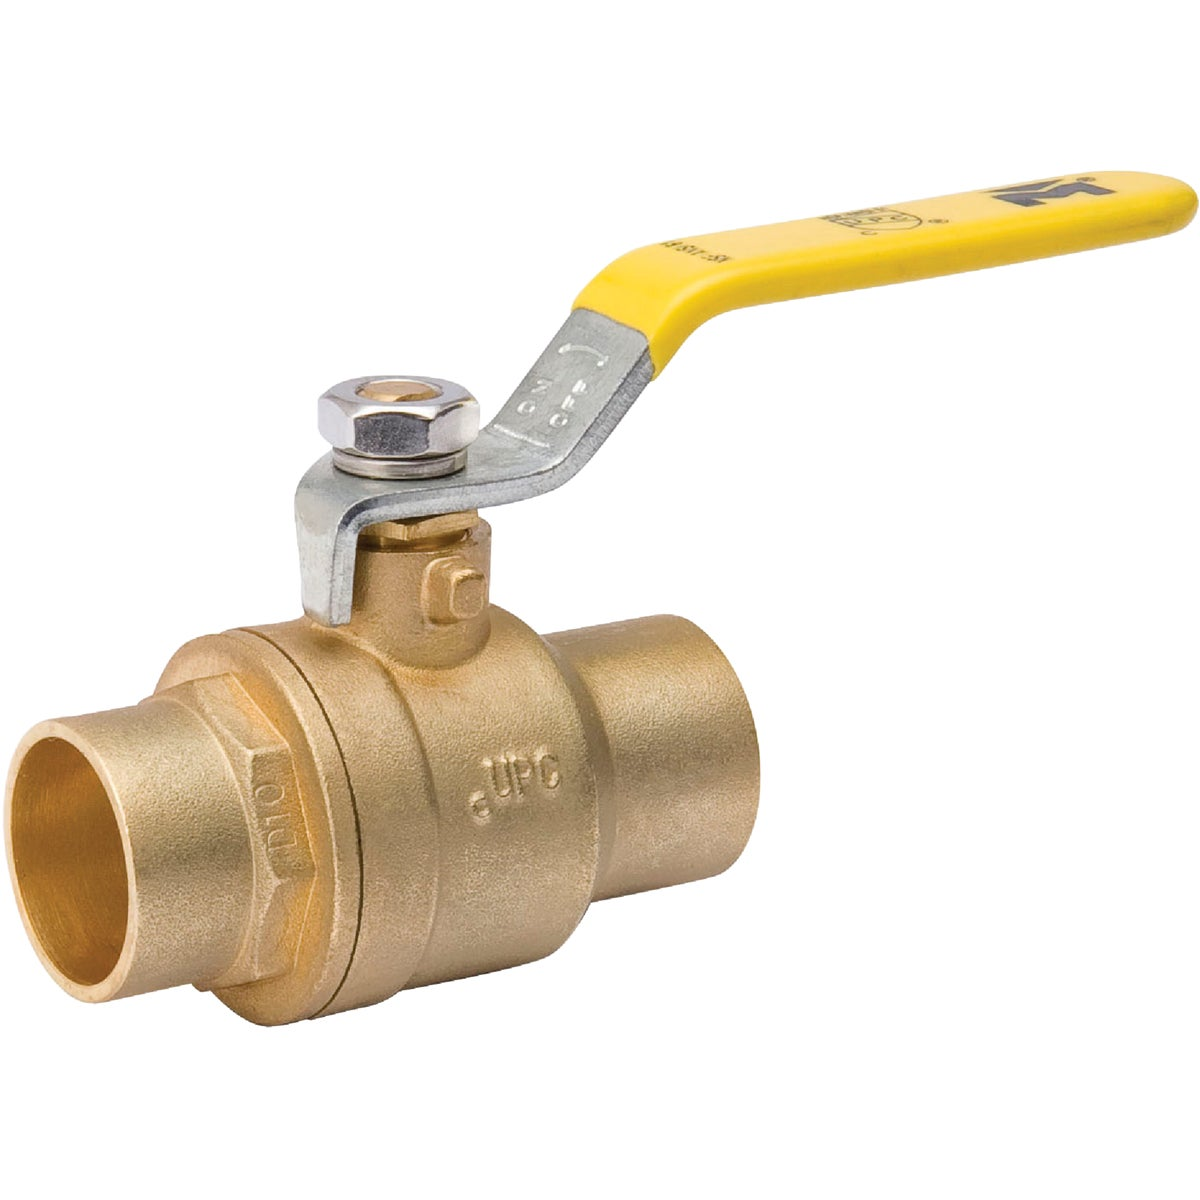 "1"" SWT BALL VALVE - 107-845NL by Mueller B K"